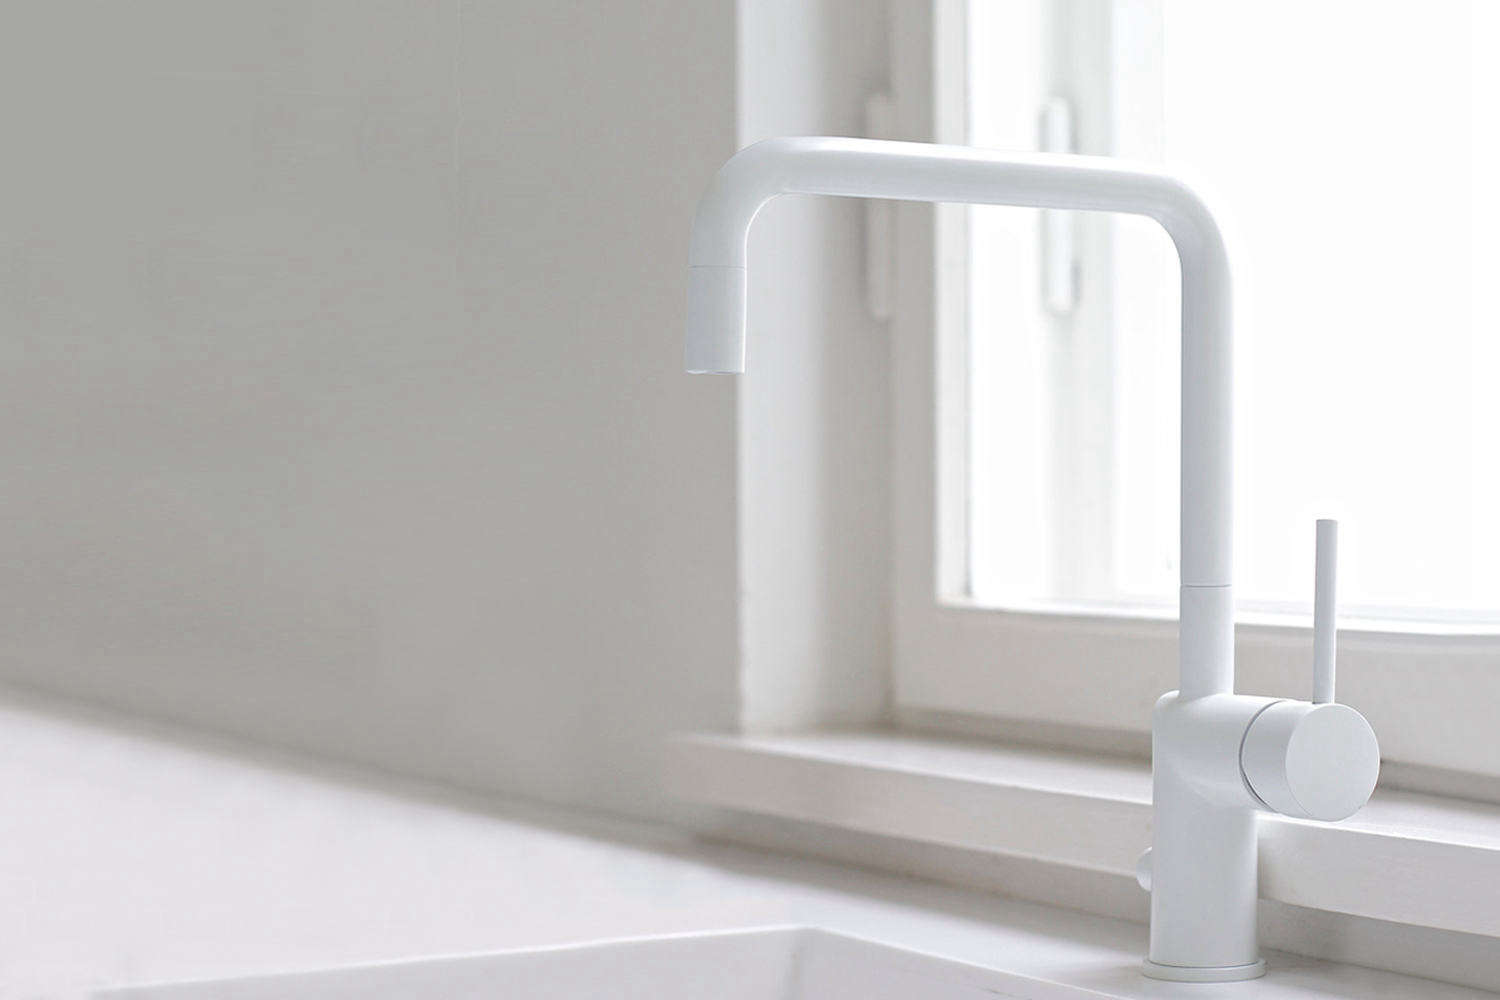 10 Easy Pieces Modern Matte White Faucets Nivito&#8\2\17;s RH 300 One handle Mixer is available in white and designed for the kitchen; it can be ordered through Nivito and Nivito dealers.